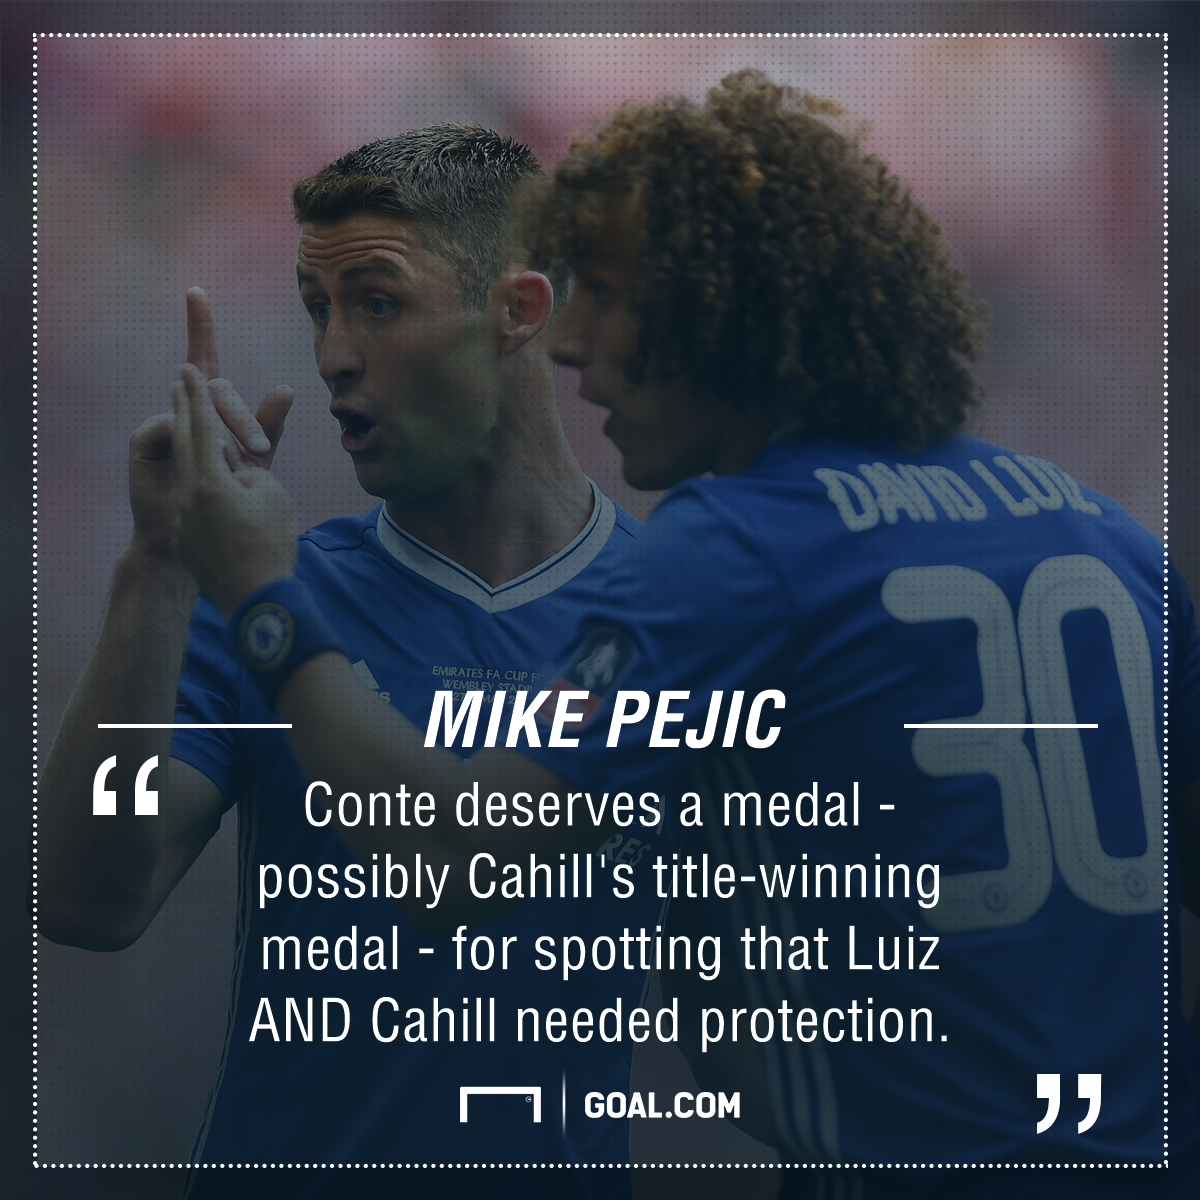 Gary Cahill David Luiz Mike Pejic